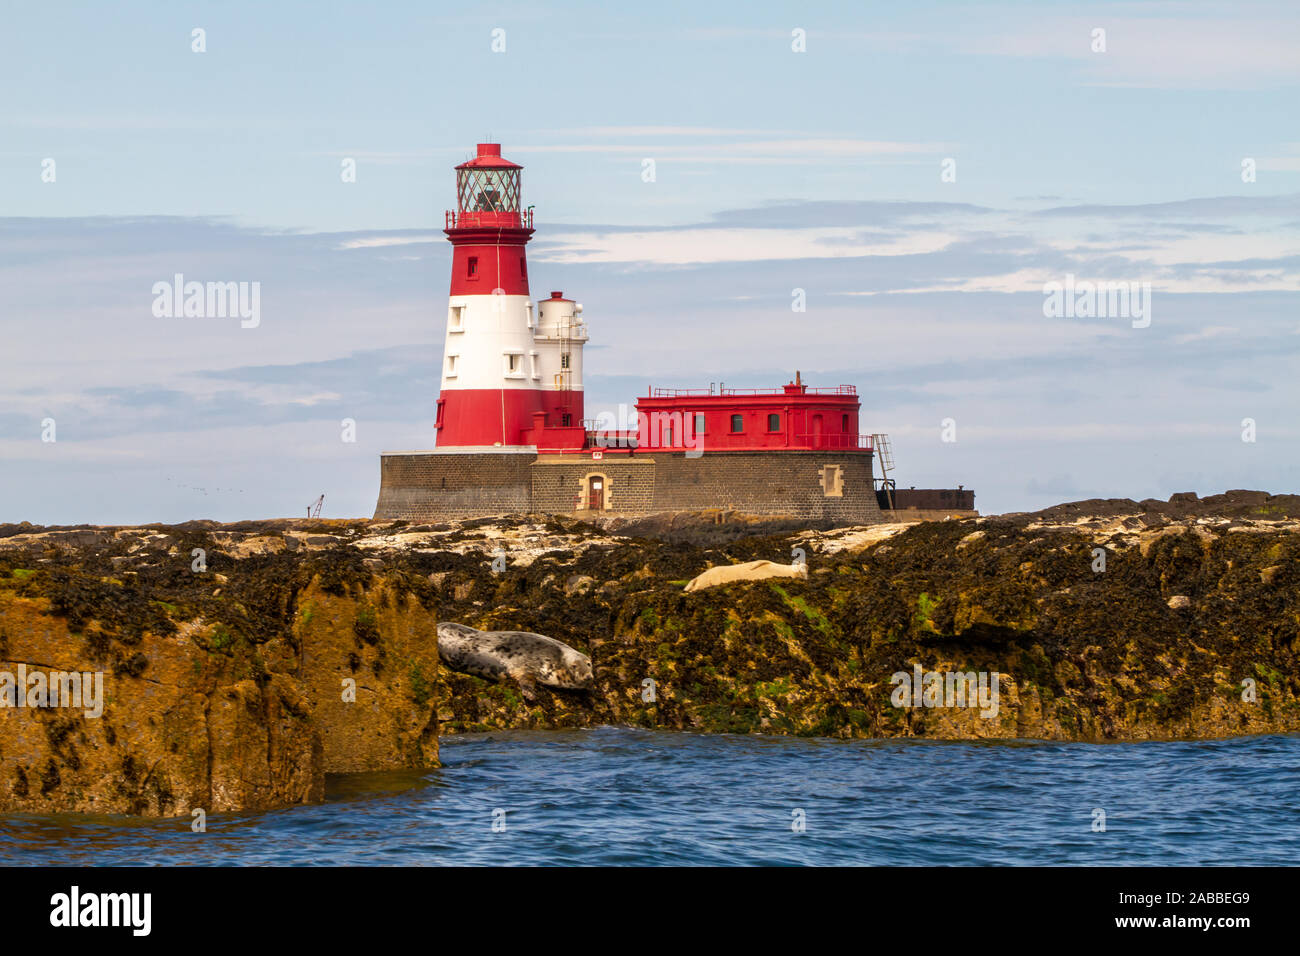 Longstone Lighthouse in white and red, on Longstone Rock in the outer group of the Farne Islands off the Northumberland Coast with seals in front Stock Photo